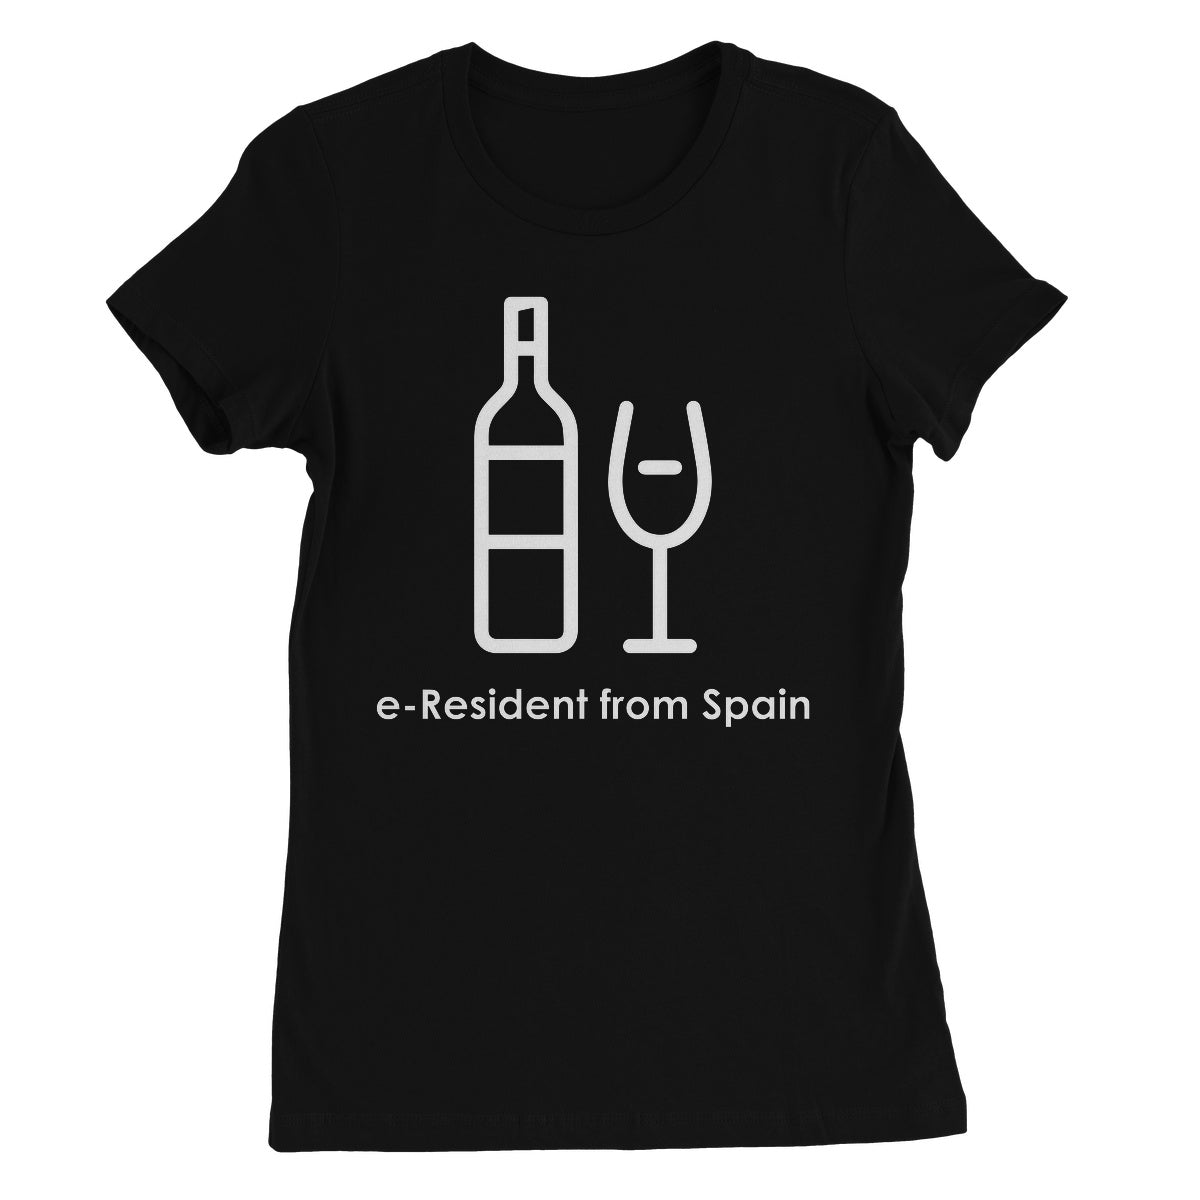 E-Residency Collection: Spain Women's Favourite T-Shirt